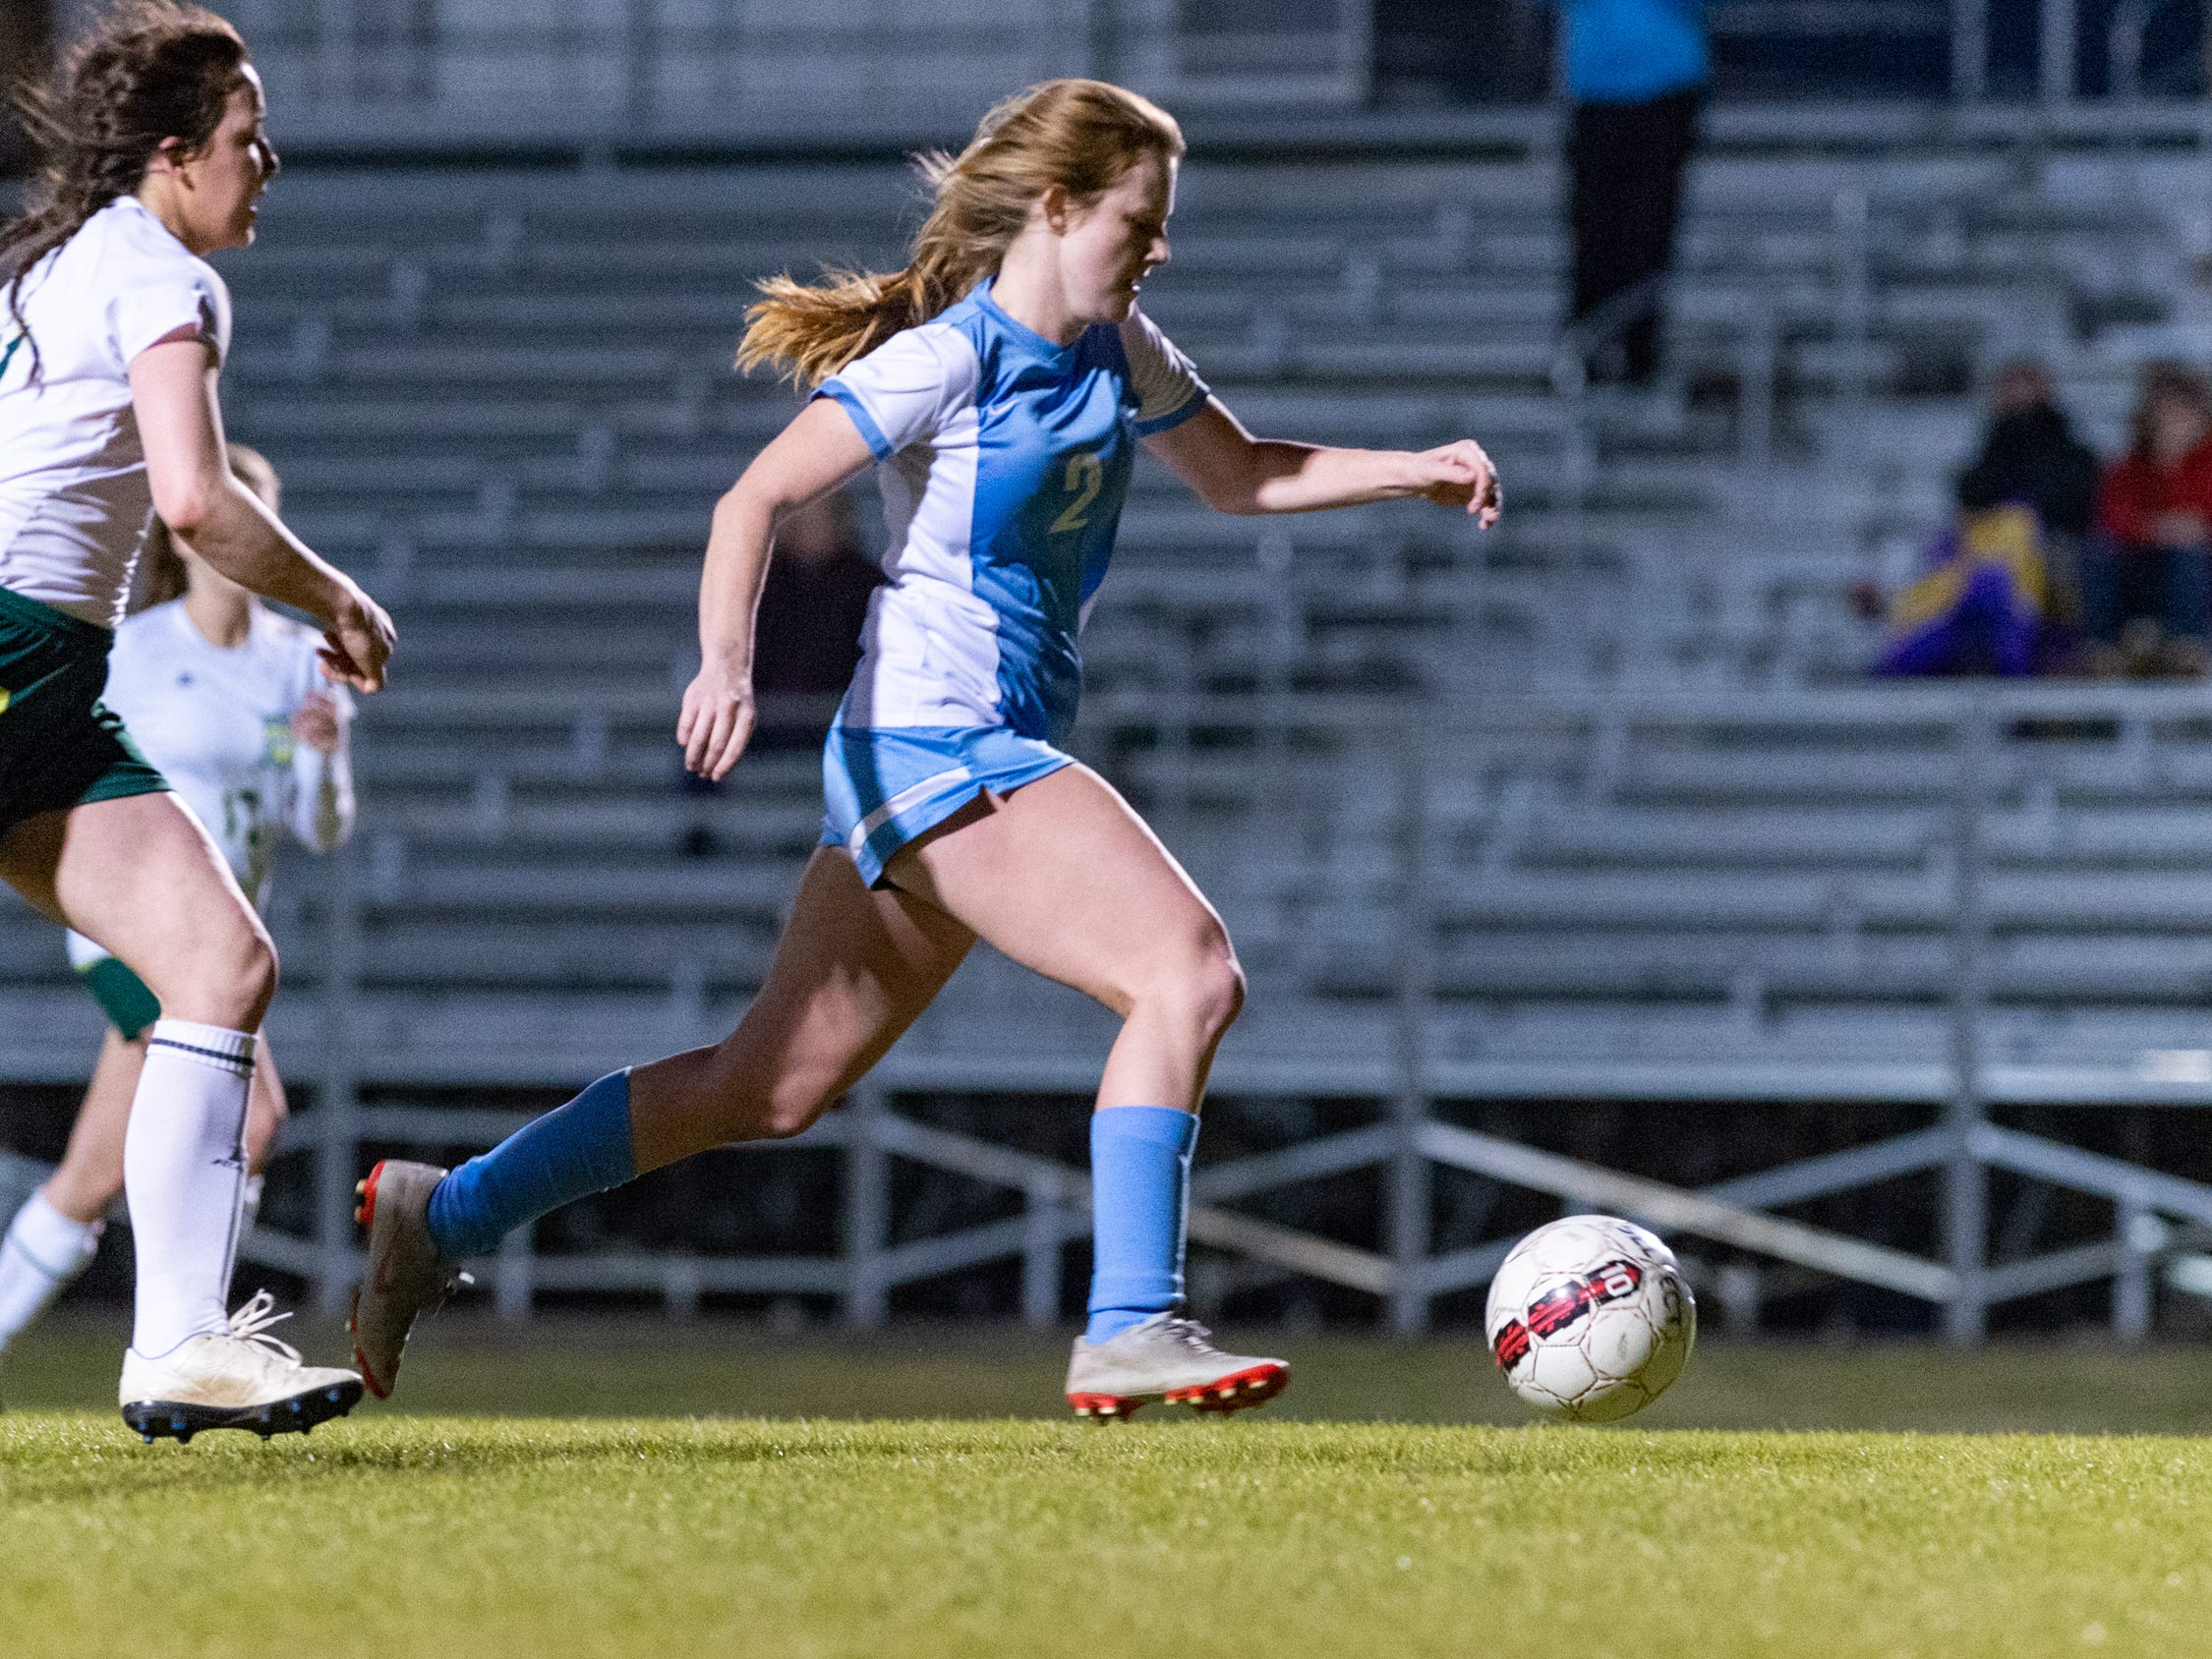 Beverly Richard takes a shot on goal as the Ascension Blue Gators blank the Calvary Cavaliers 6-0. Thursday, Jan. 31, 2019.